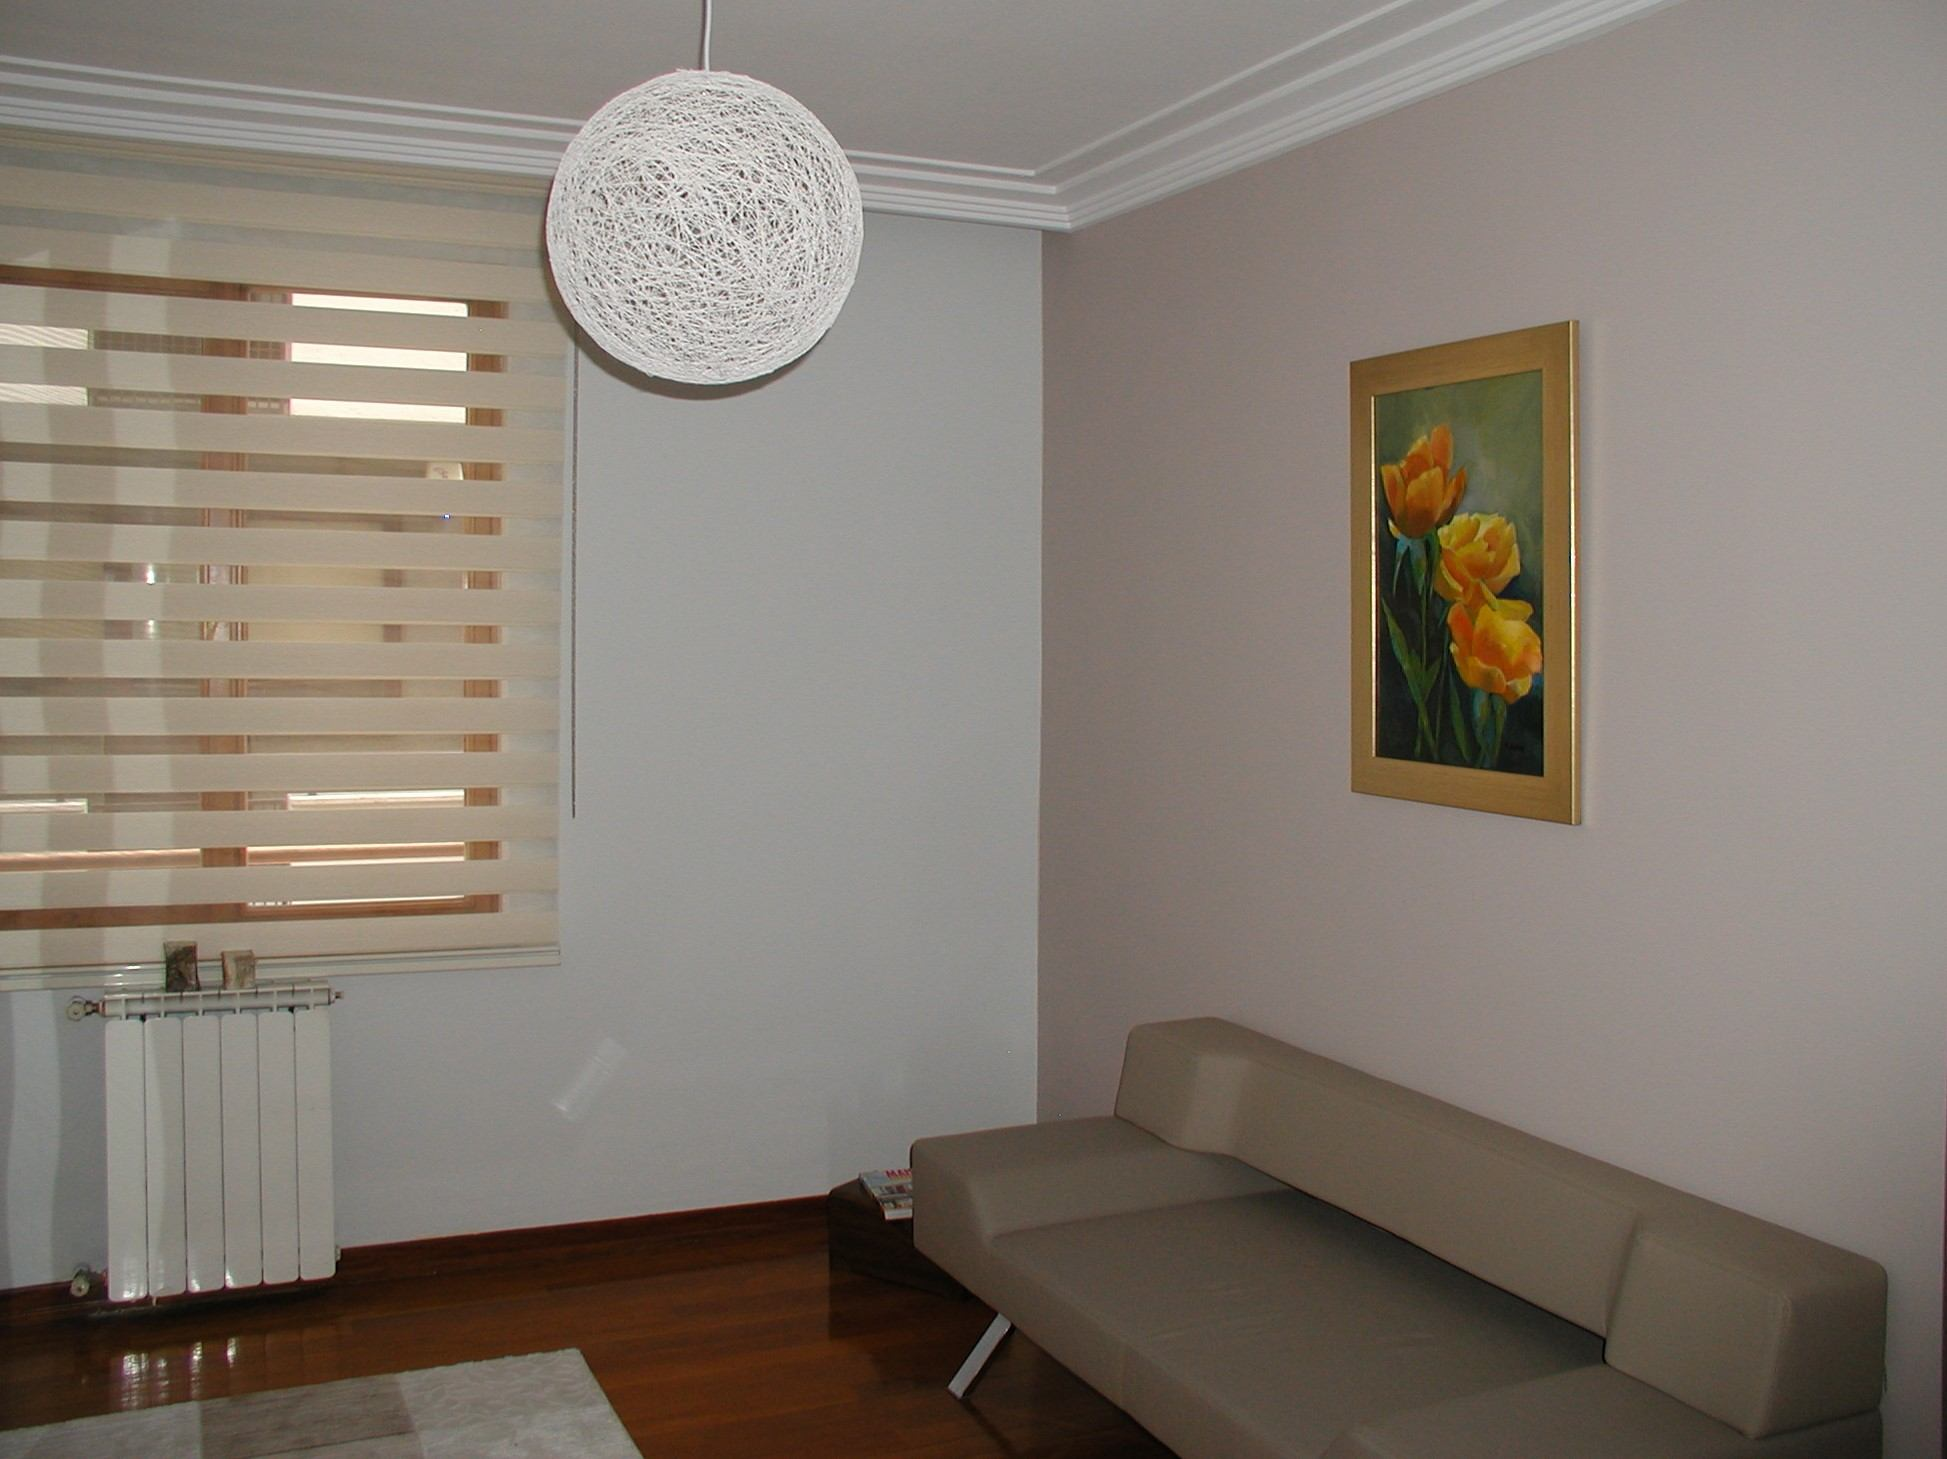 Hb-Aesthetic, Plastic Surgery Clinic gallery - picture 2